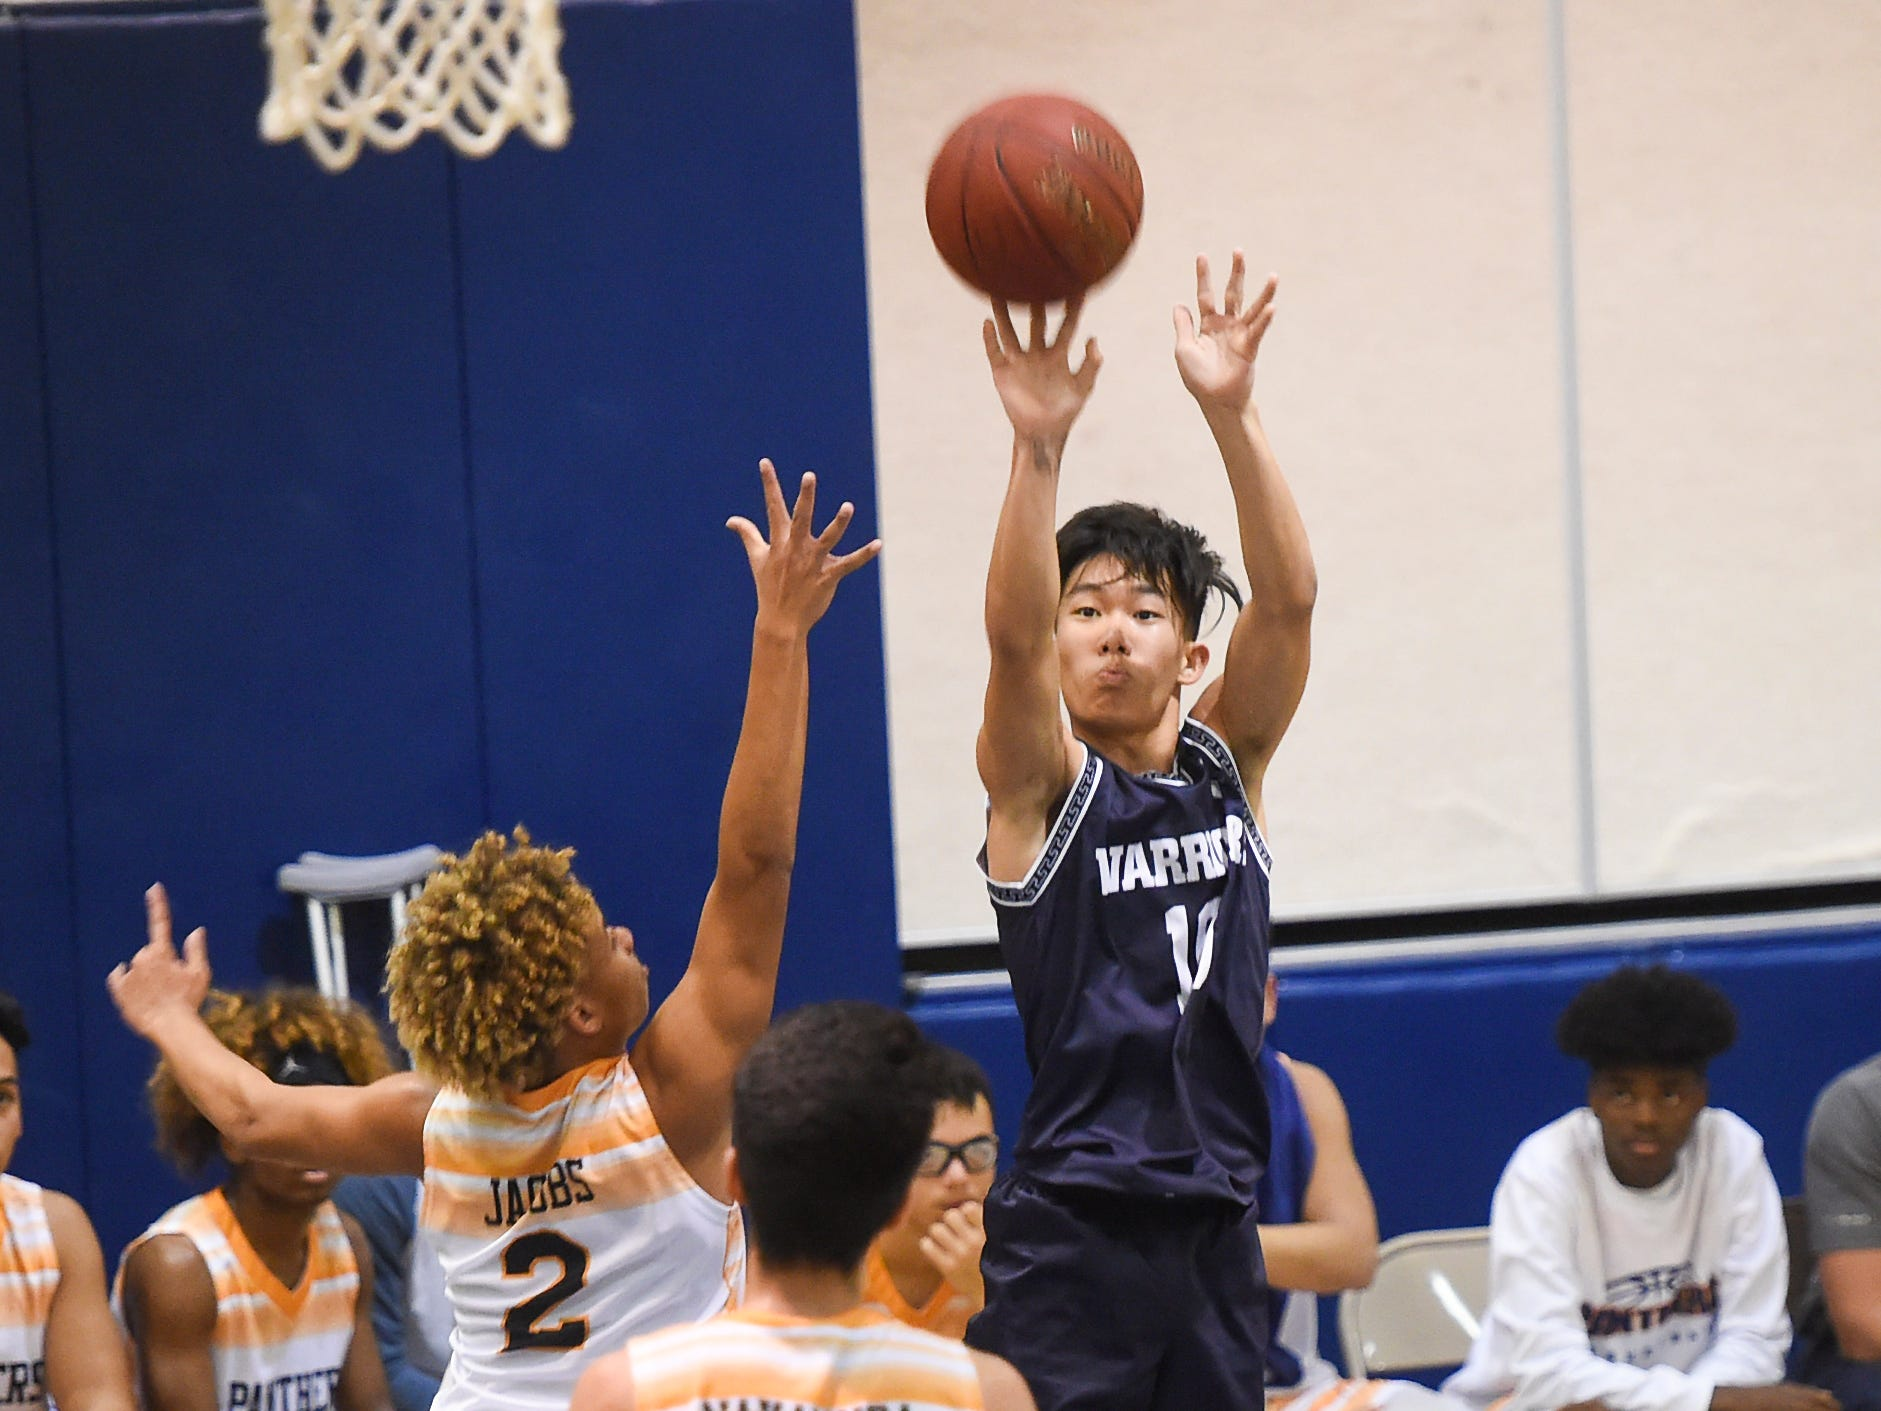 St. Paul's Hyato Tsuji pulls up for a jumper against the Guam High Panthers during their IIAAG Boys' Basketball game at the Guam High School Gym, Feb. 5, 2019.